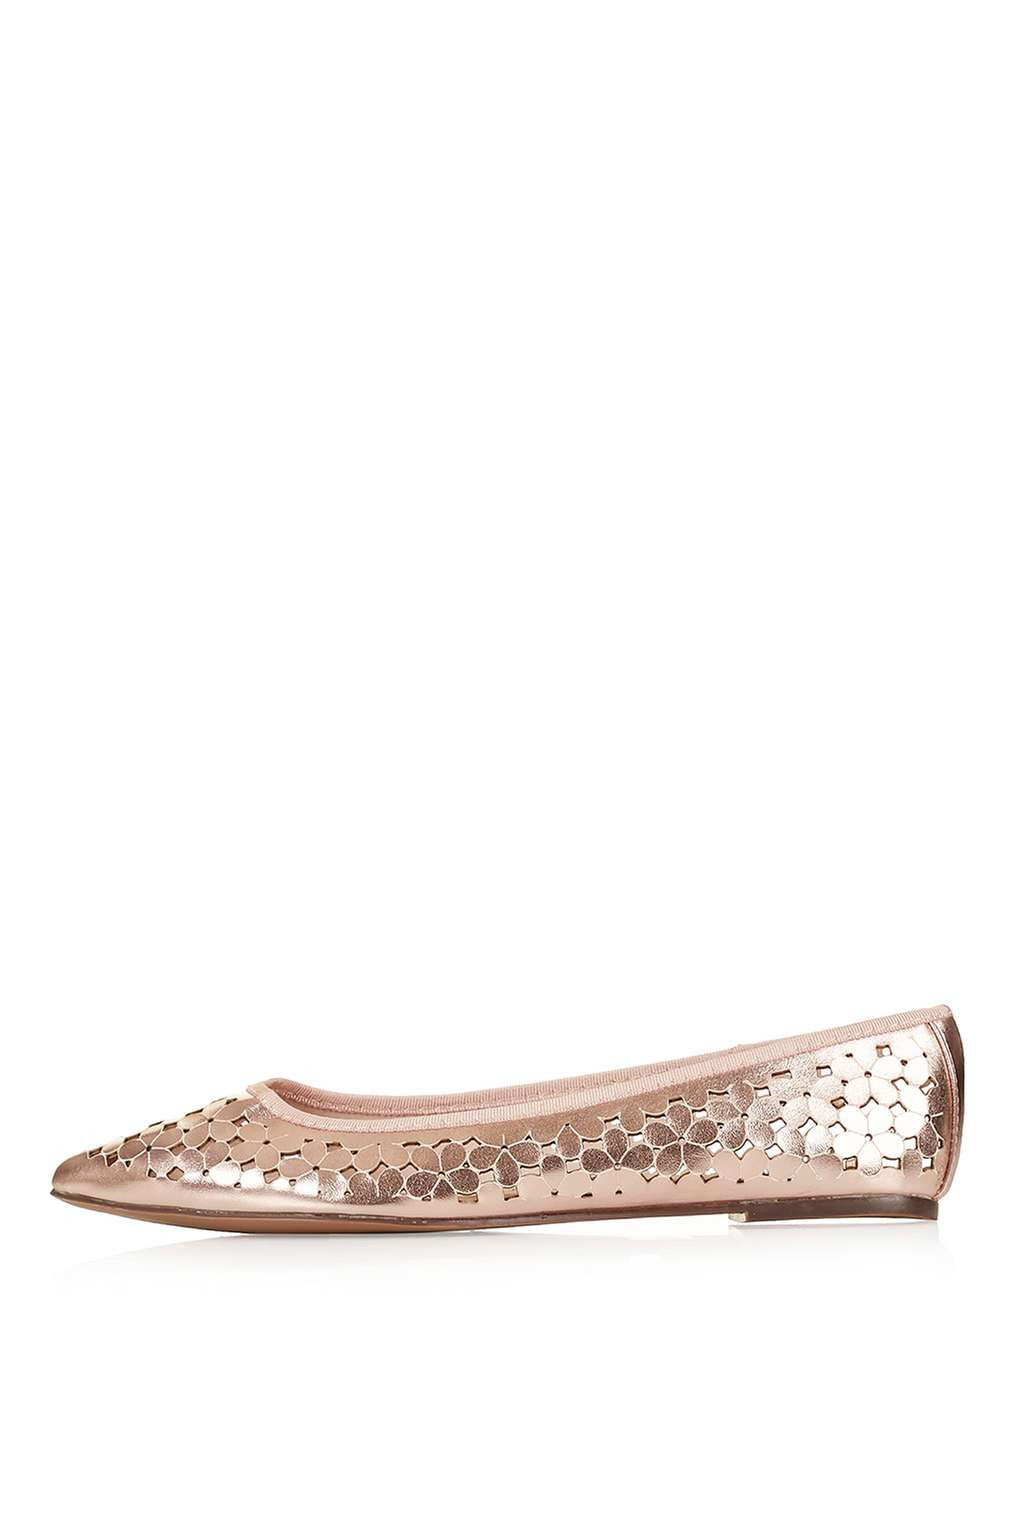 Top Shop VIVO Laser Cut Floral Pump